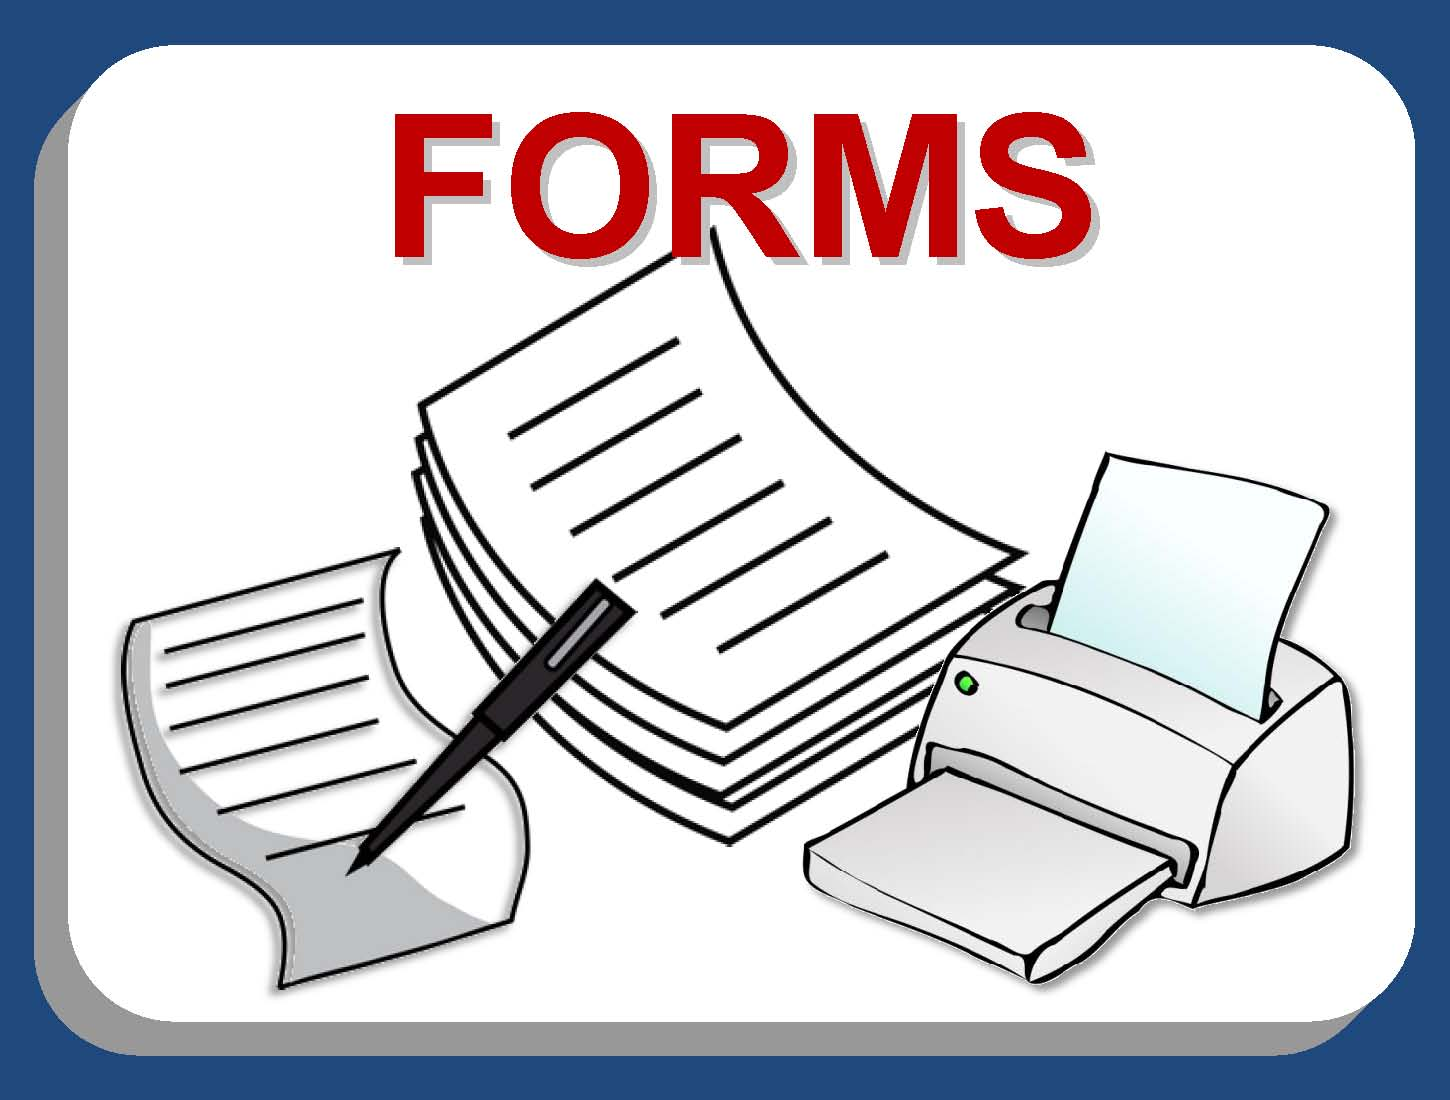 forms picture.jpg